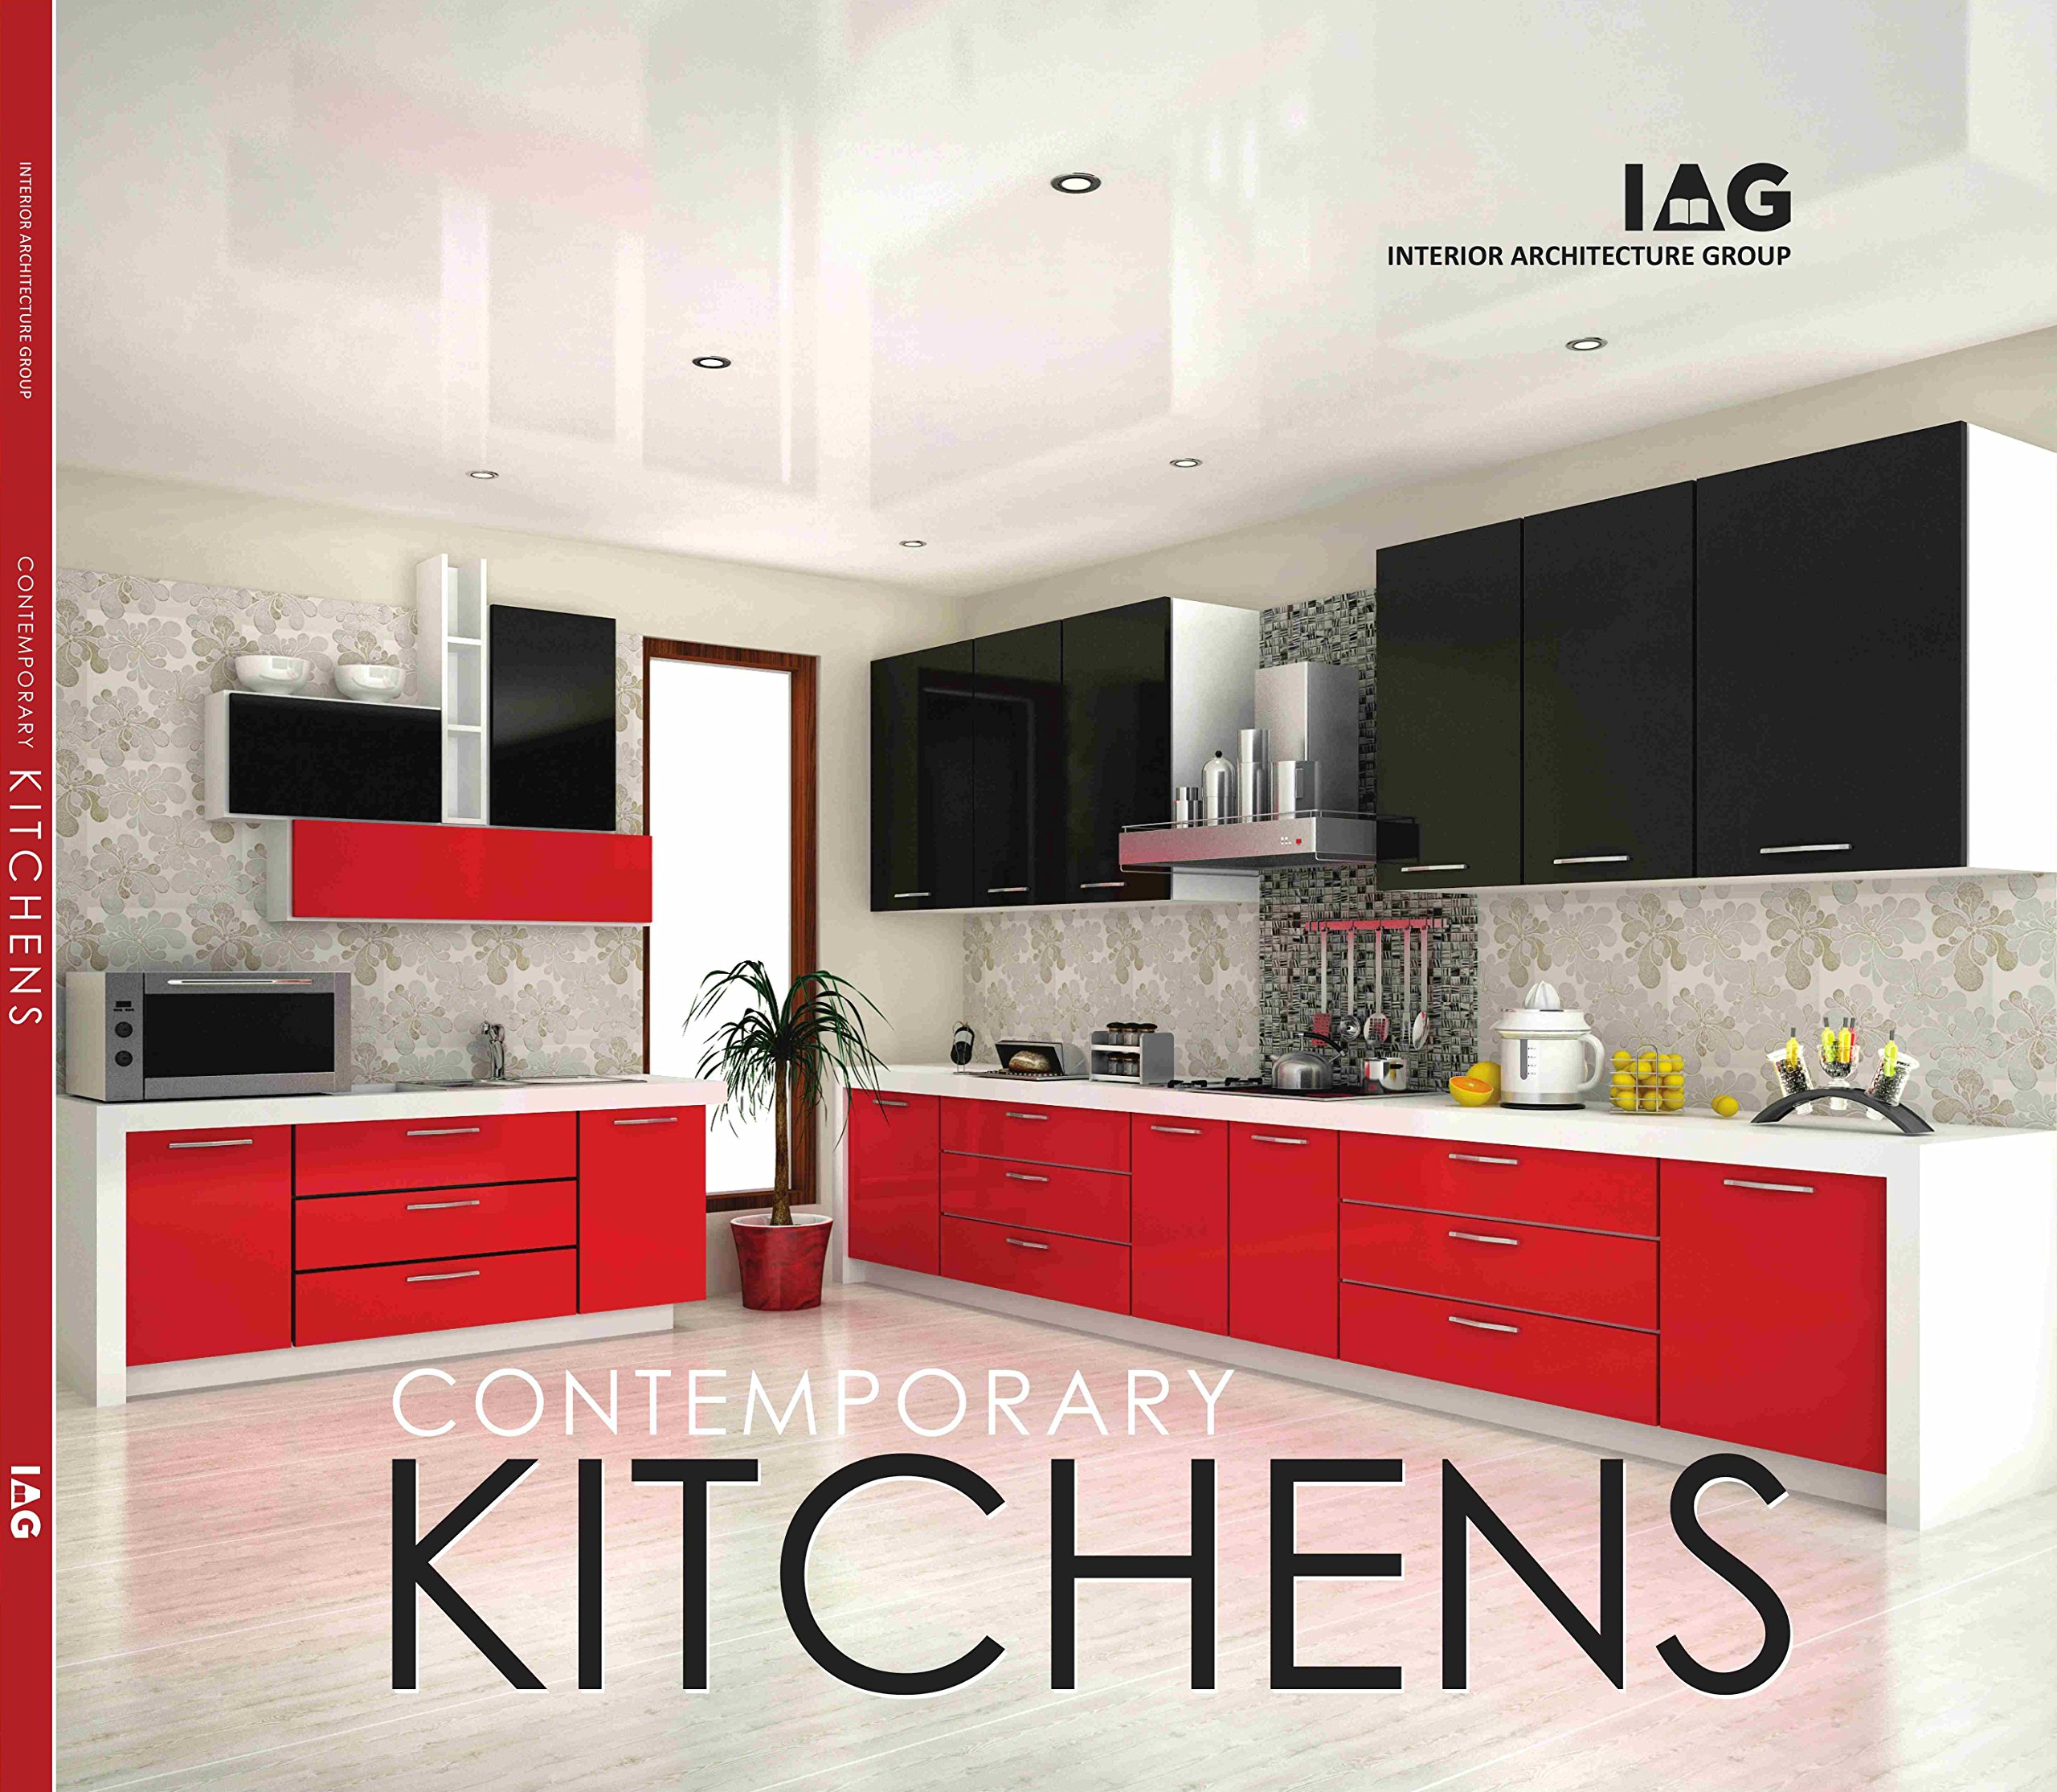 Buy Contemporary Kitchens Book Online at Low Prices in India ...